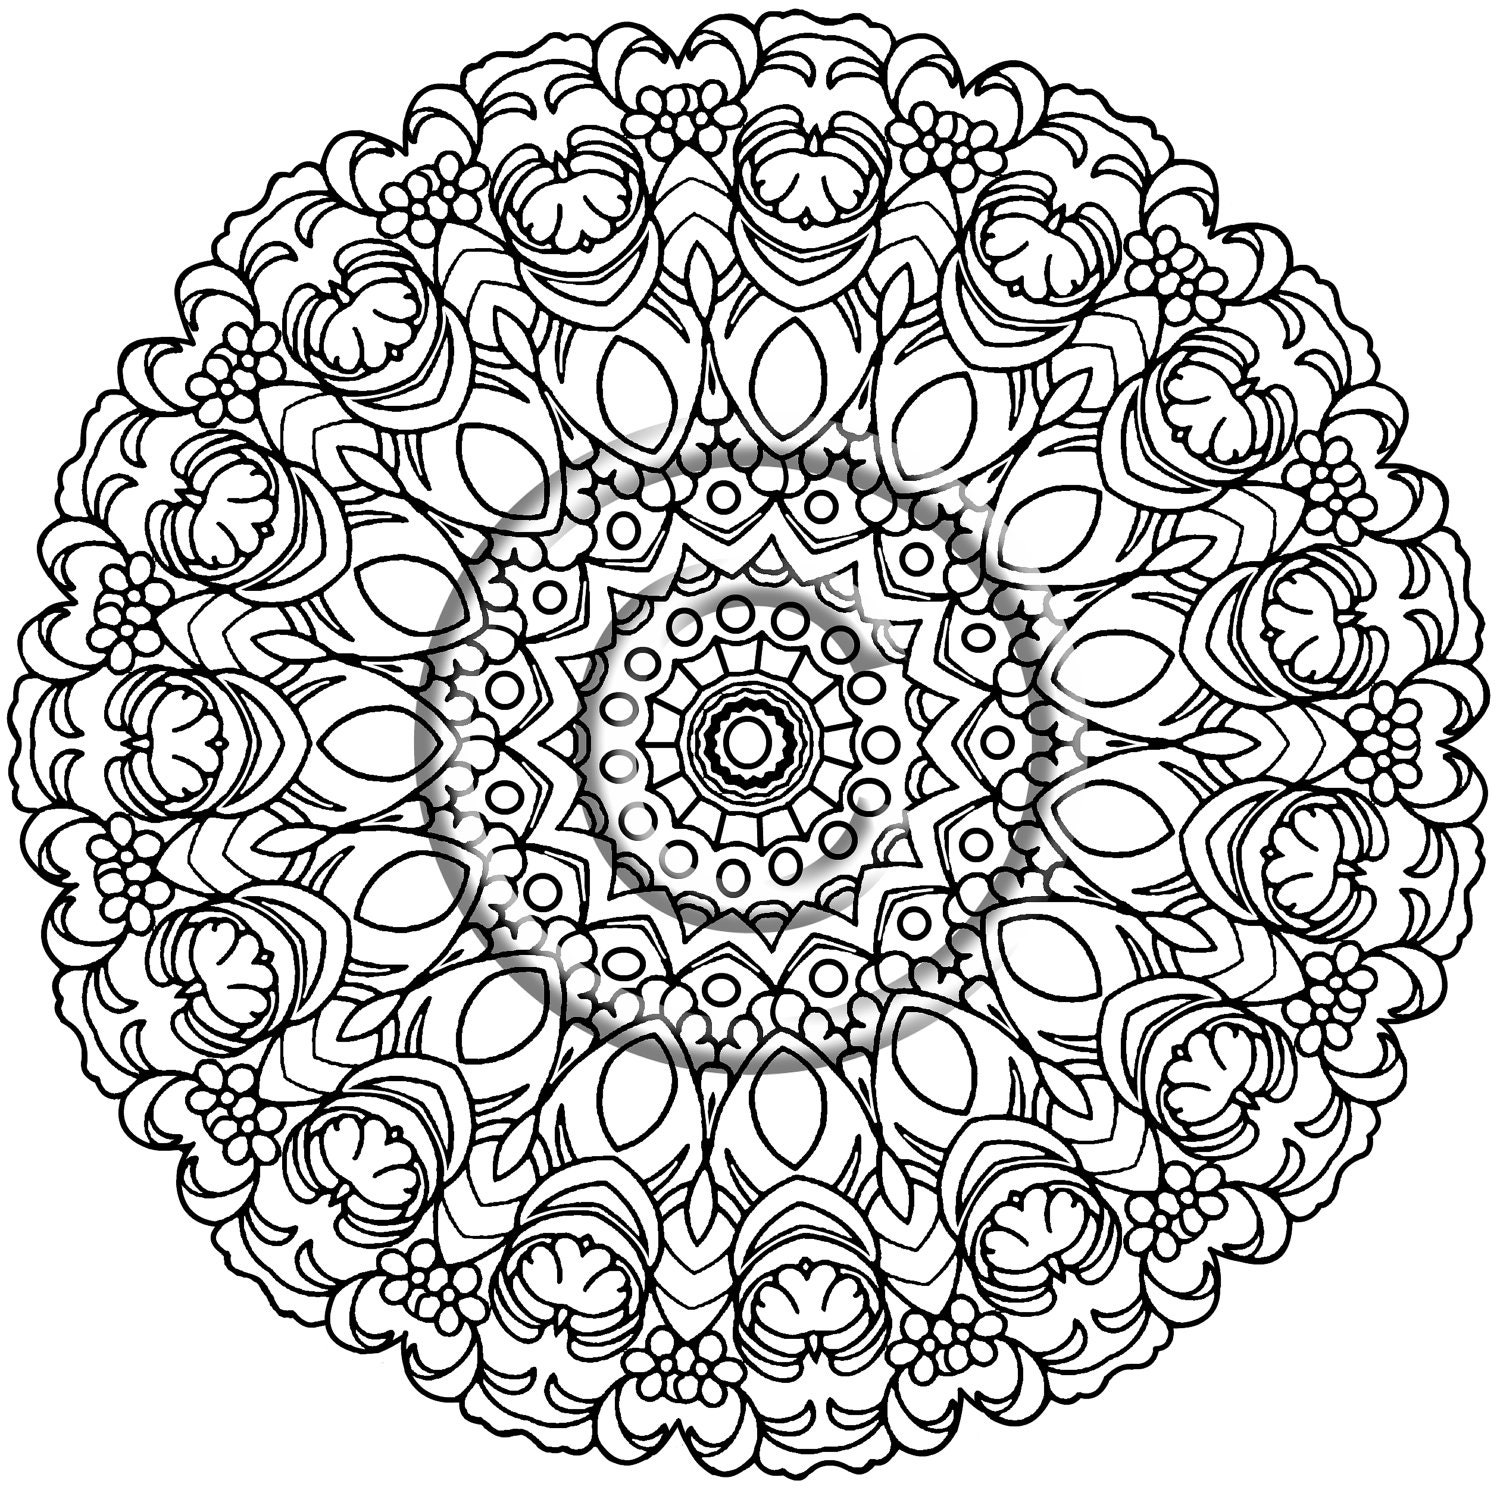 Hippie Flowers Free Coloring Pages